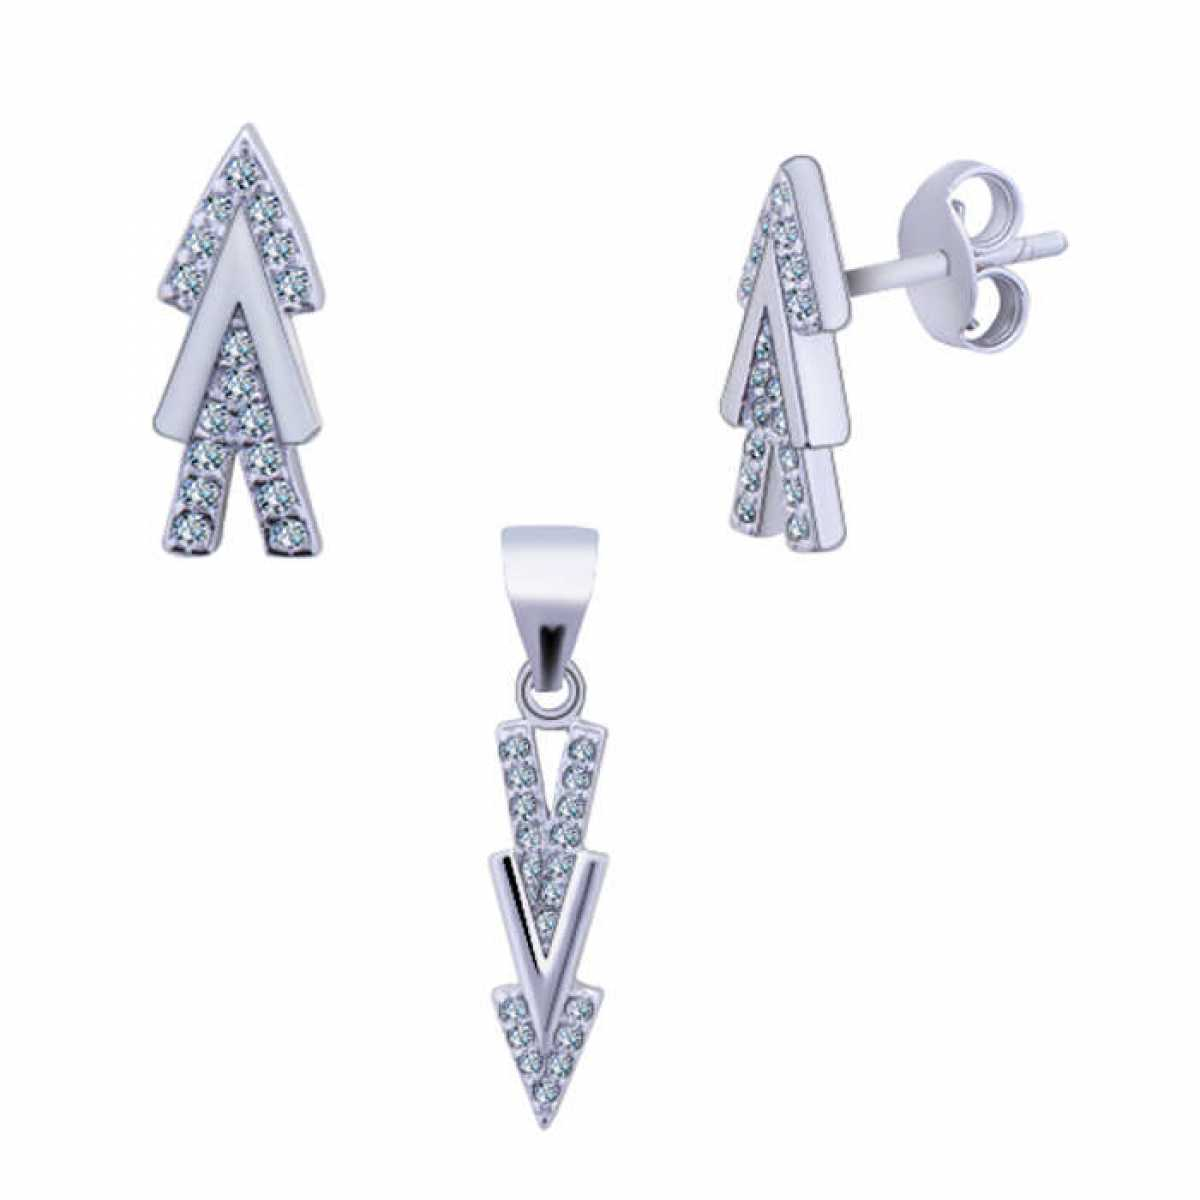 Three Triangle Arrow Silver Set